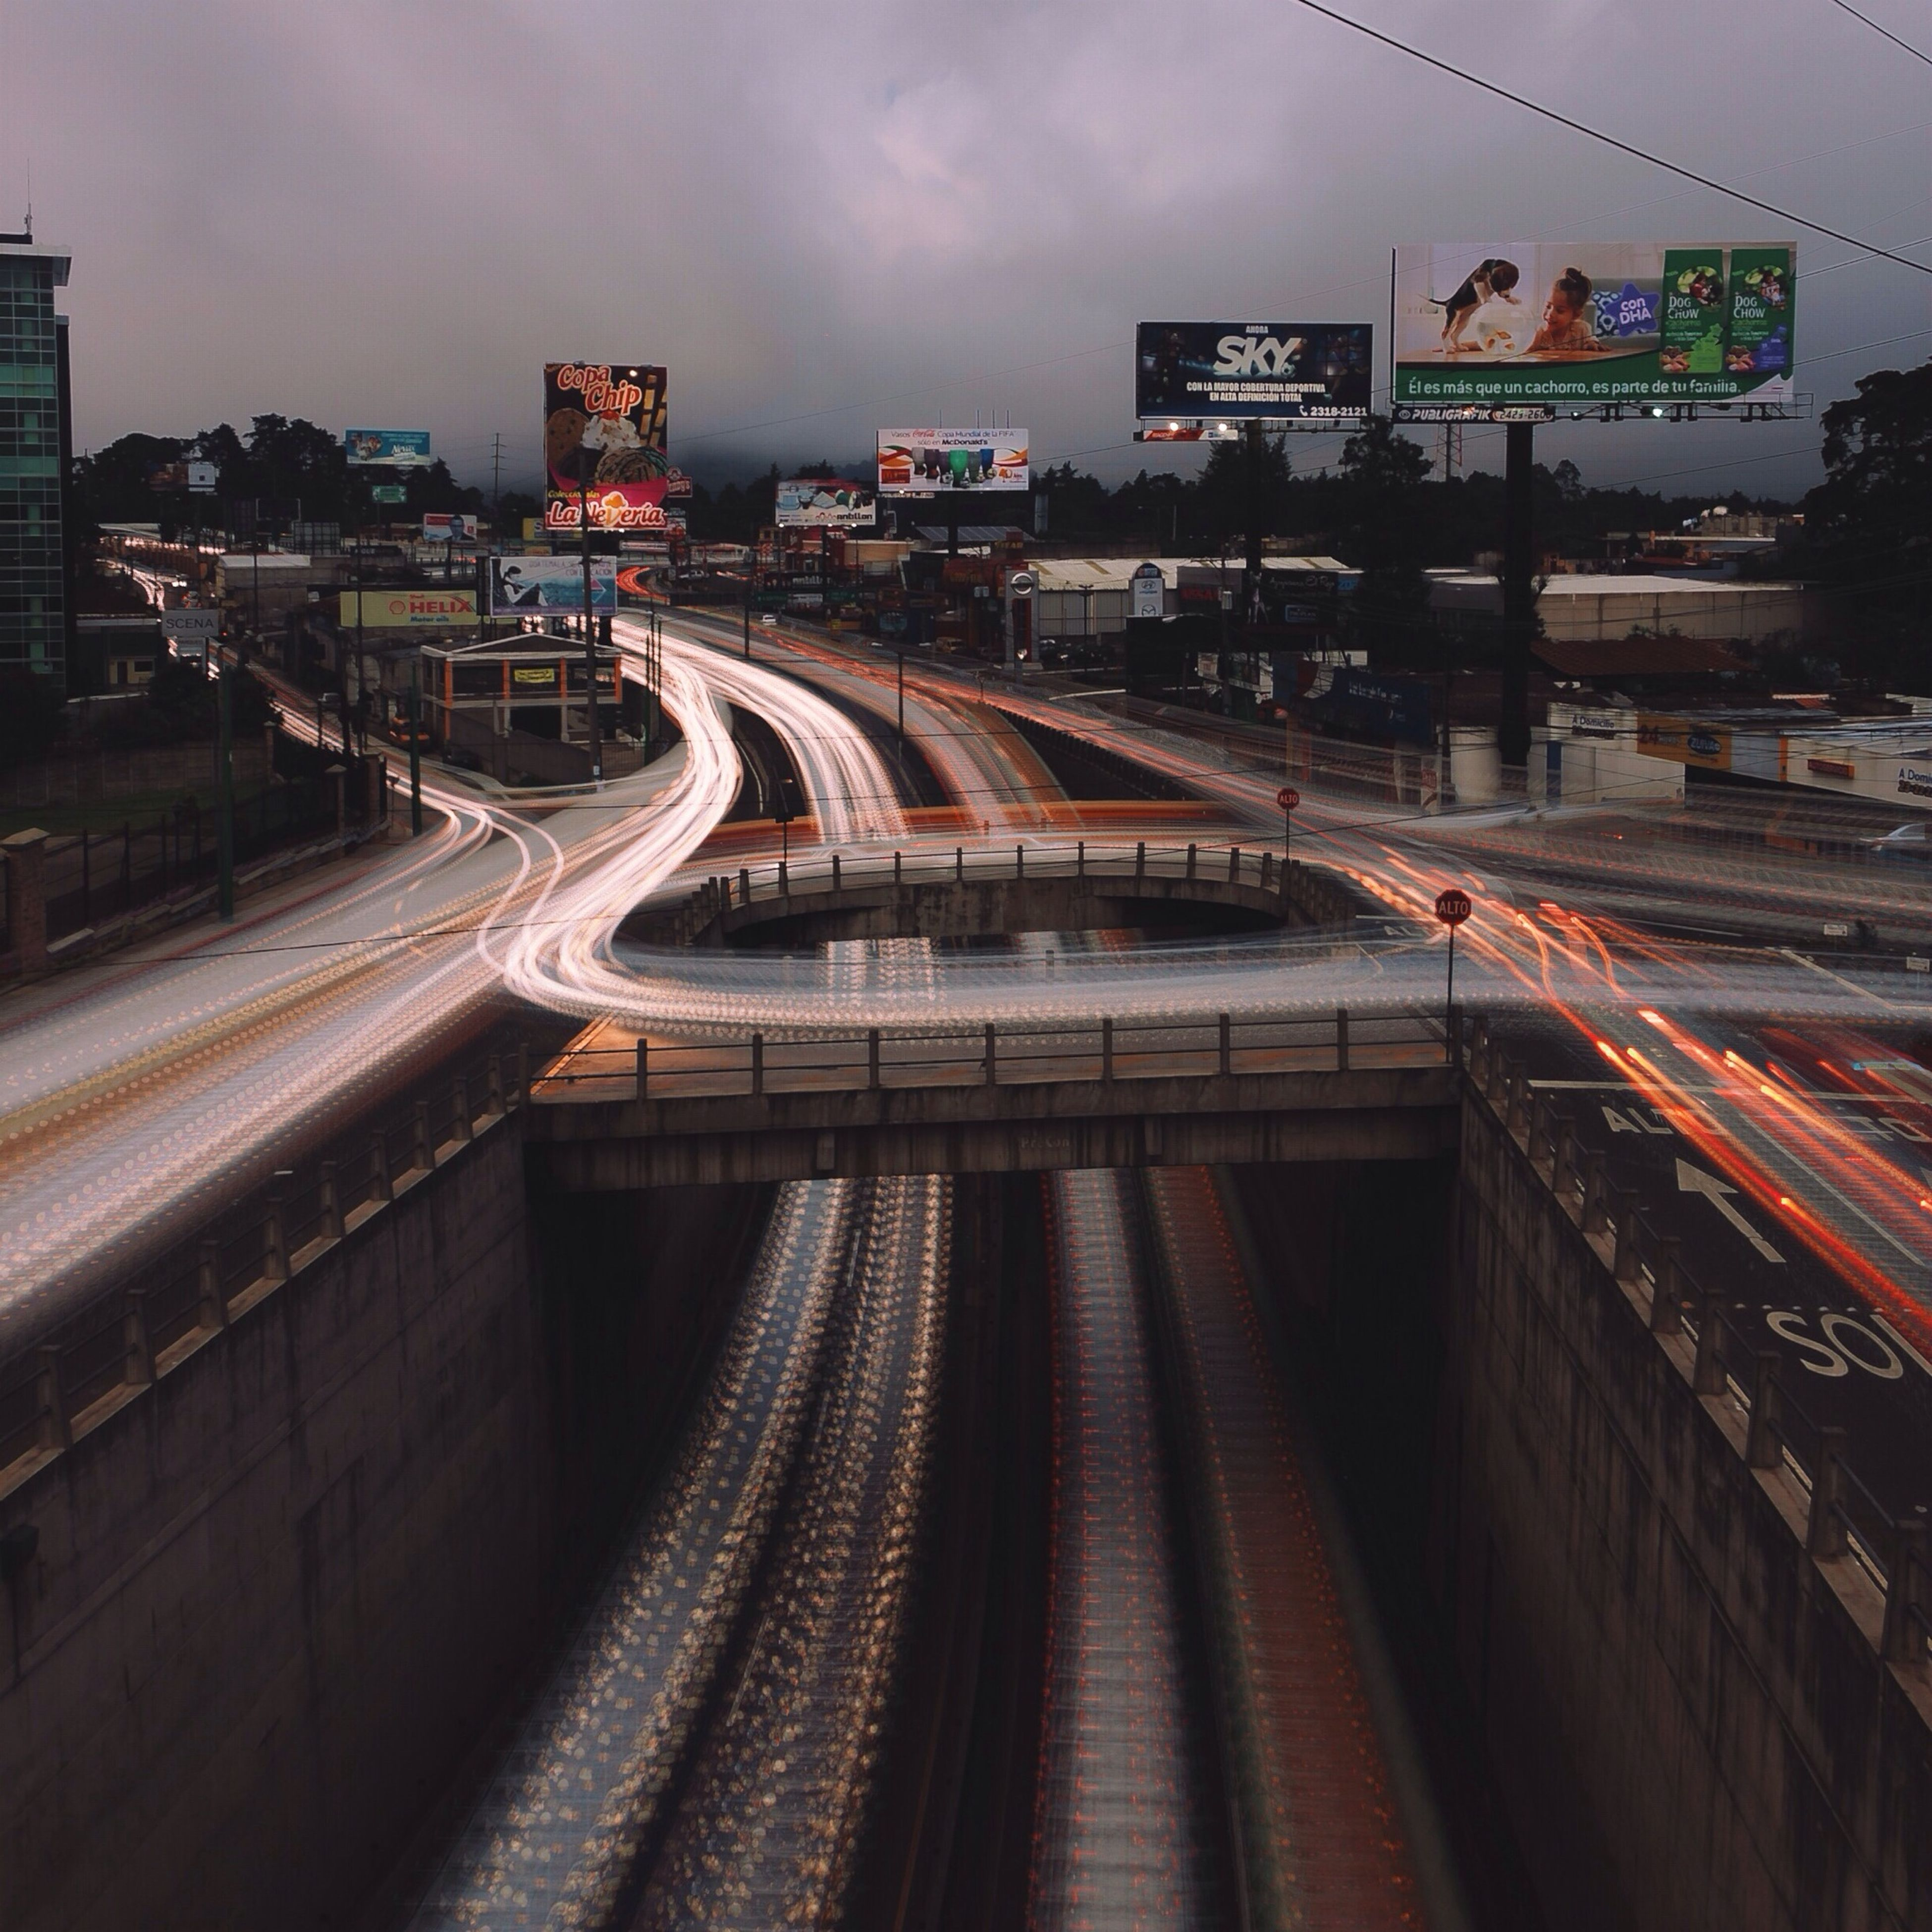 transportation, illuminated, public transportation, railroad track, rail transportation, railroad station platform, railroad station, architecture, built structure, travel, train - vehicle, high angle view, mode of transport, speed, connection, night, bridge - man made structure, passenger train, train, motion